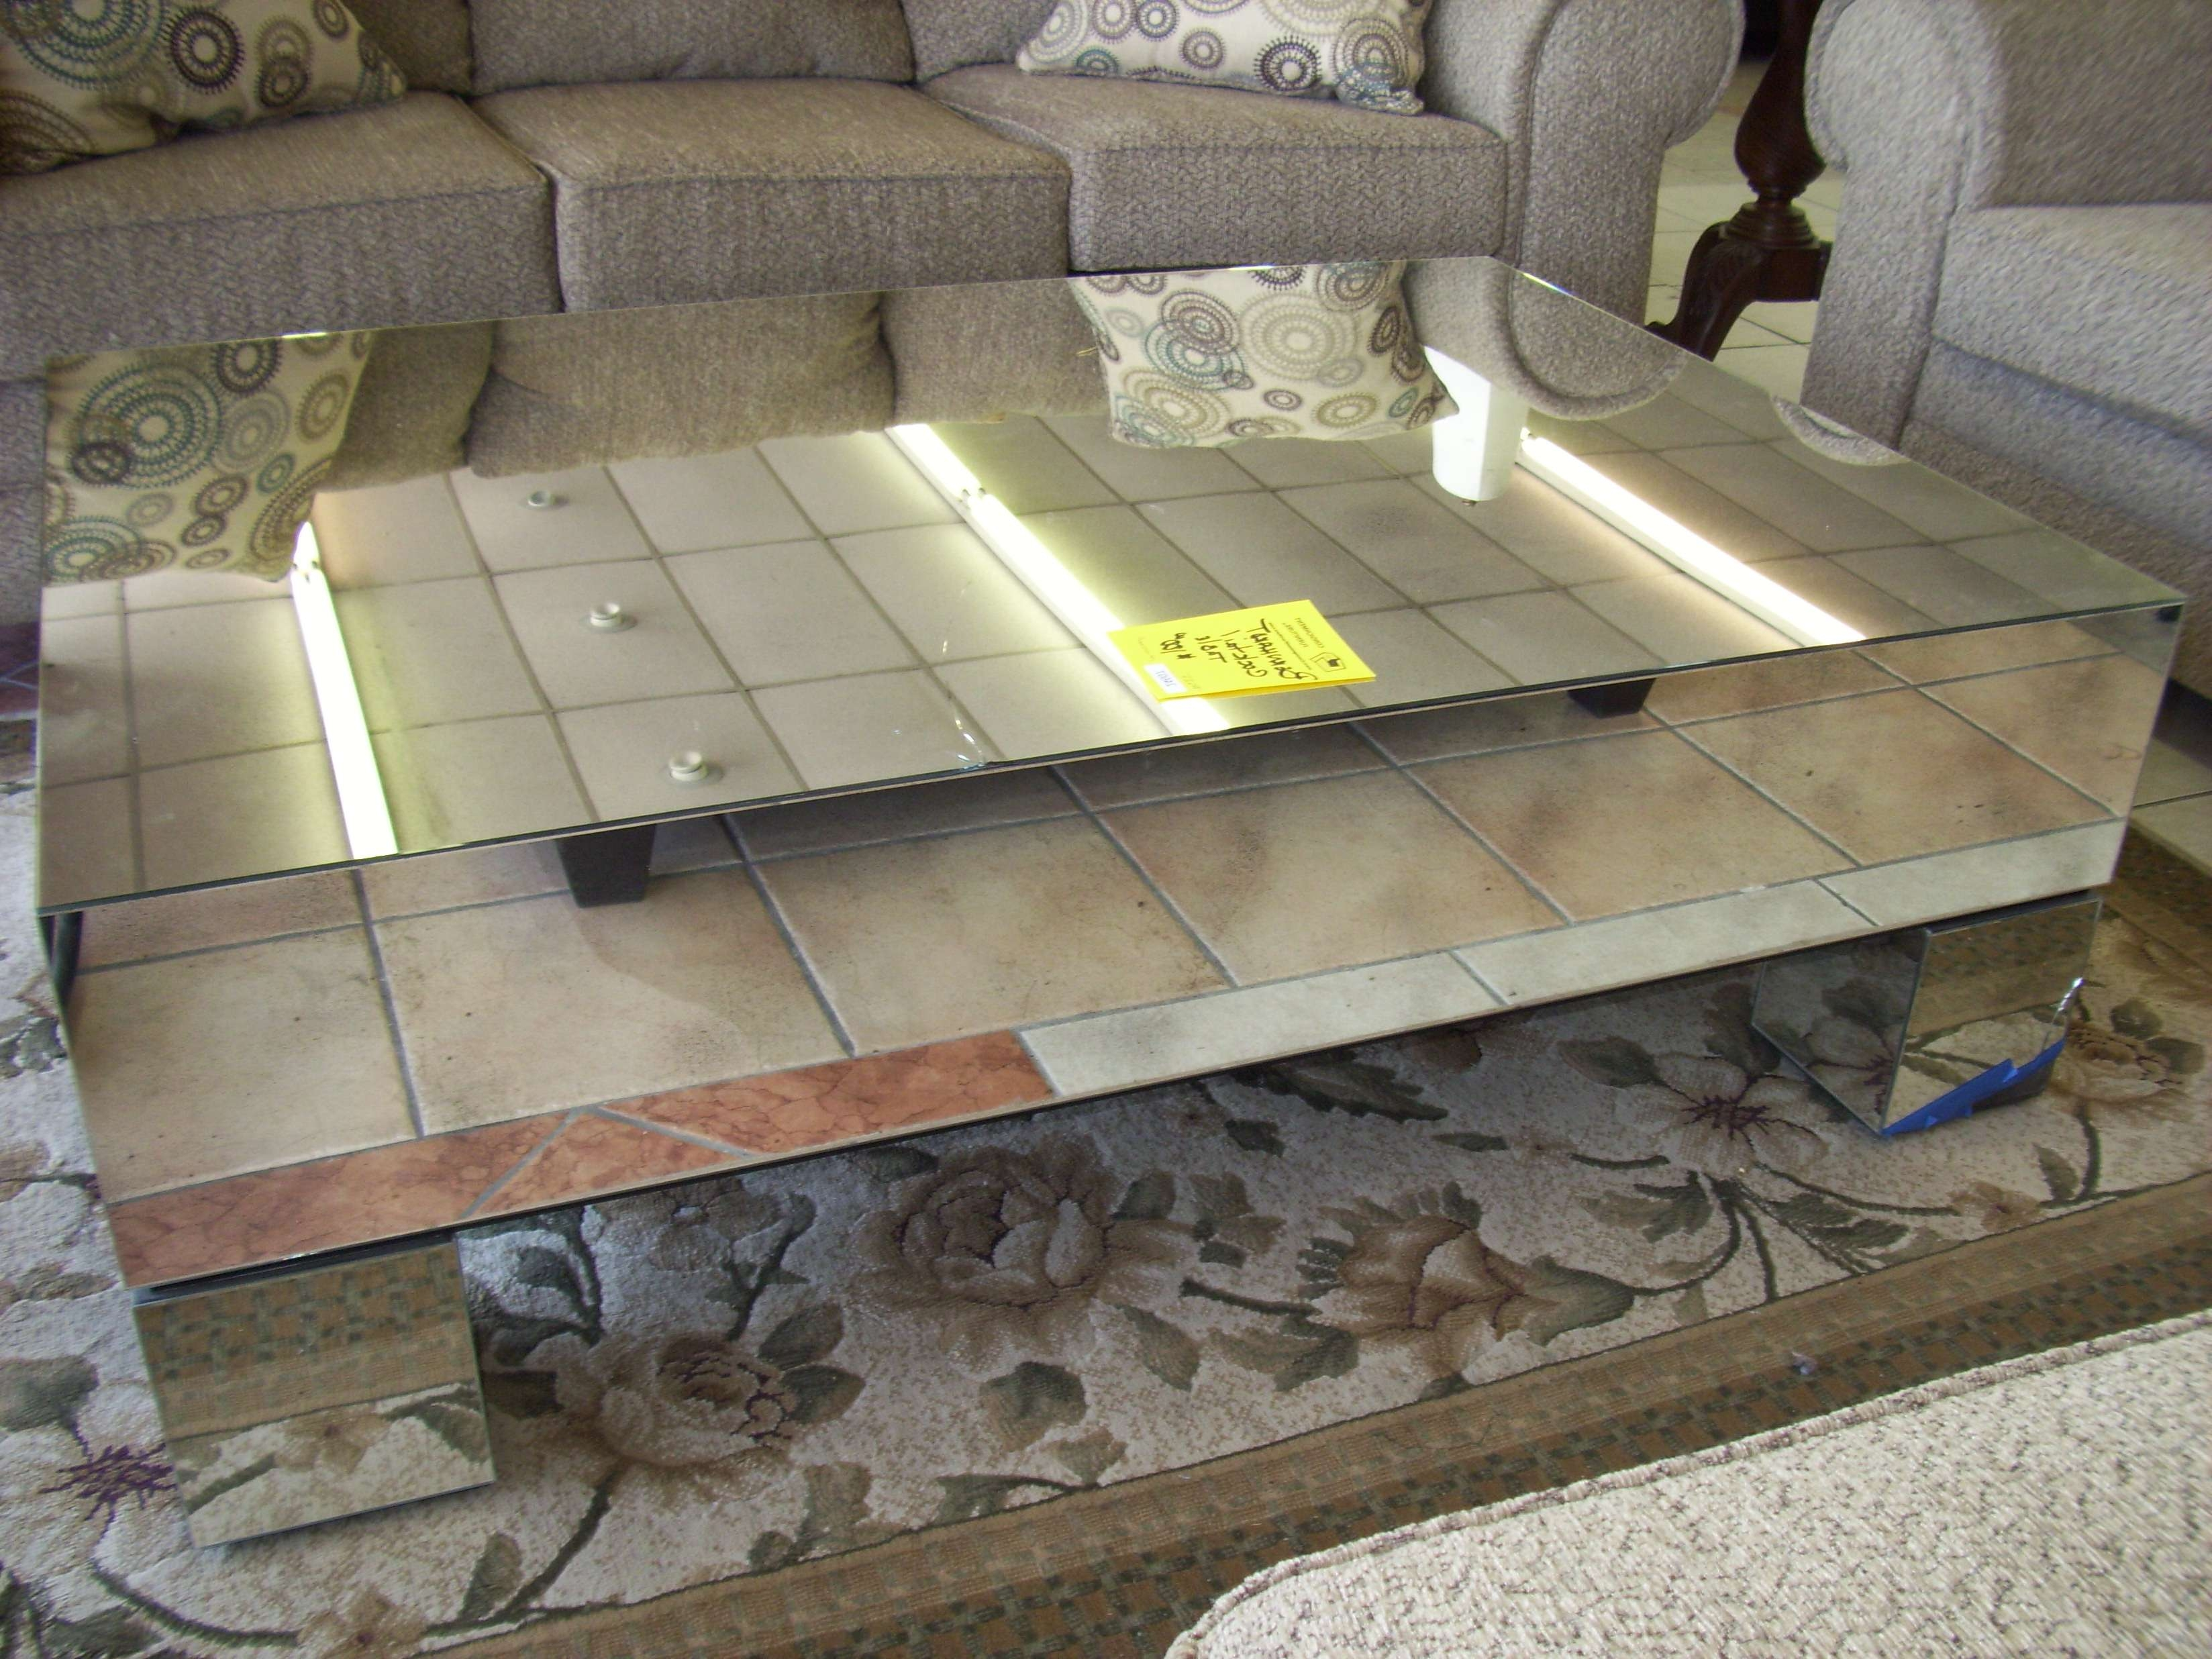 Furniture: Mesmerizing Mirrored Coffee Table For Your Living Room Within 2018 Round Mirrored Coffee Tables (View 5 of 20)